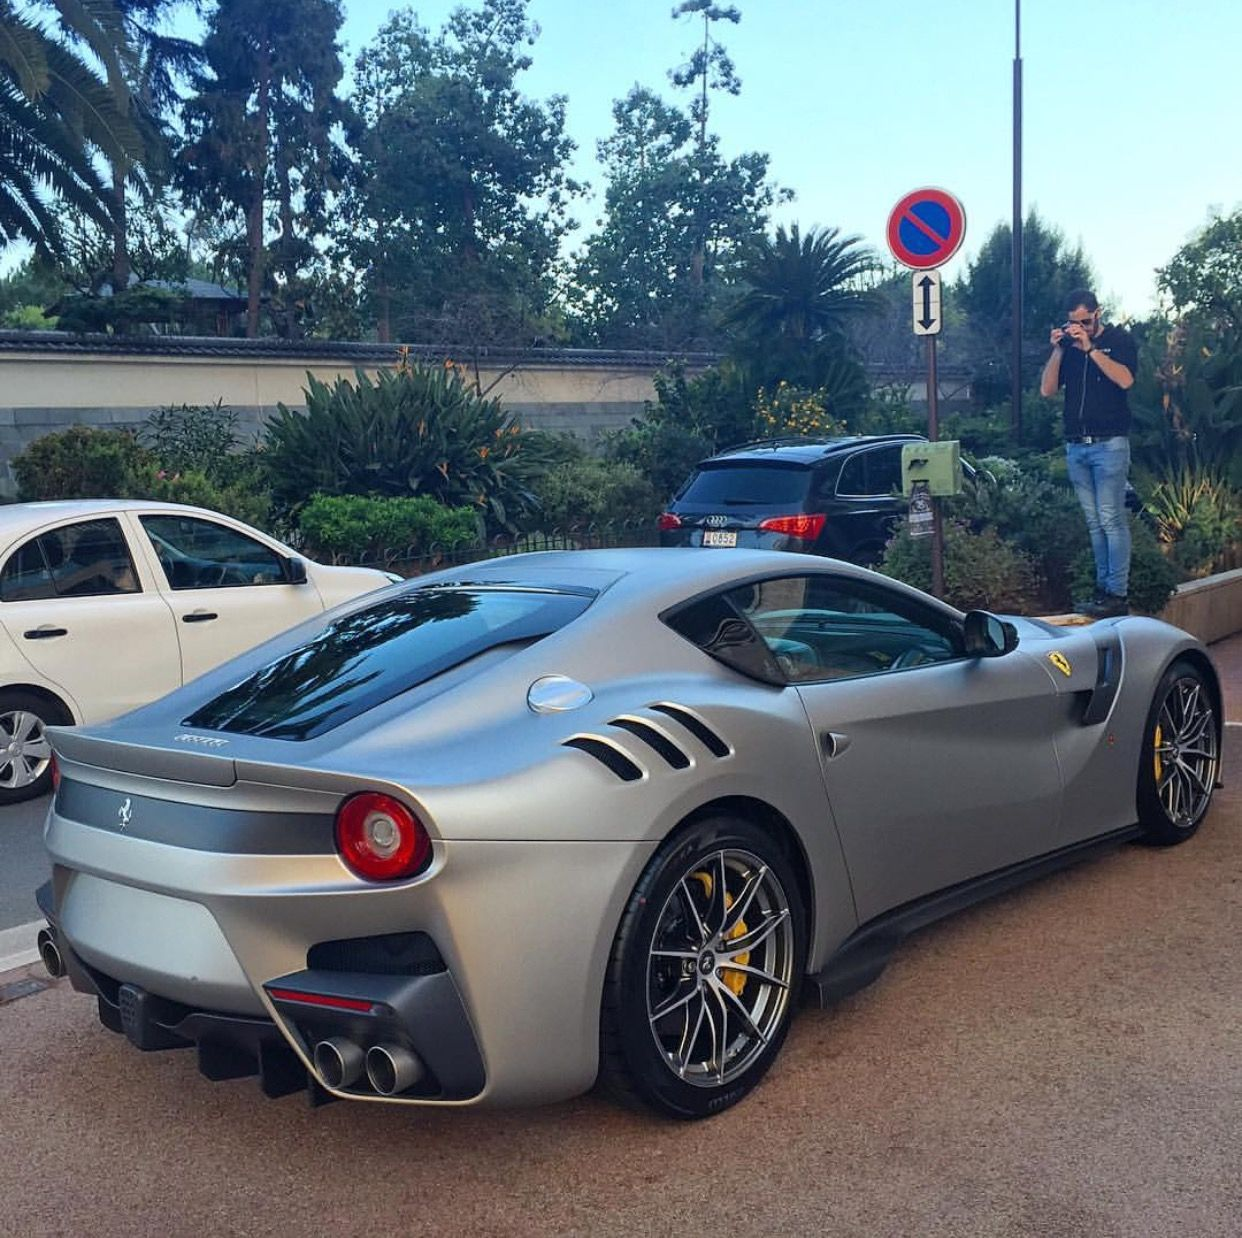 Matte Silver Bentley Awesome: Ferrari F12 TDF Painted In Matte Silver Photo Taken By